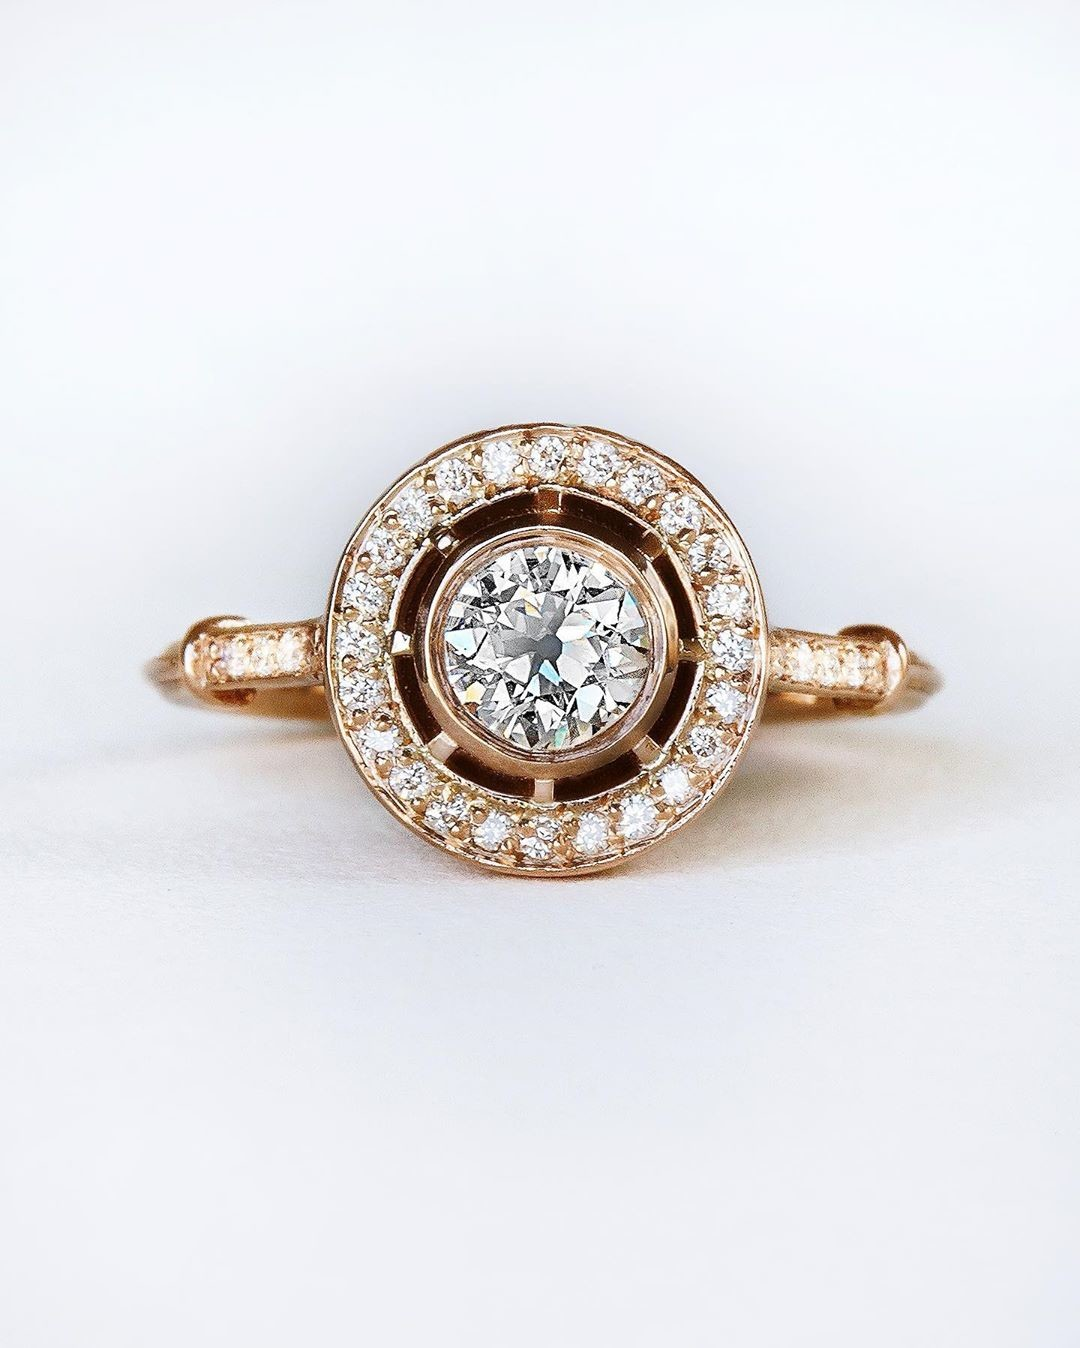 🌀✨💫 Old school vibes with just a dash of modern confection 🧁🍡🍰 This antique Old European cut diamond just looks soo